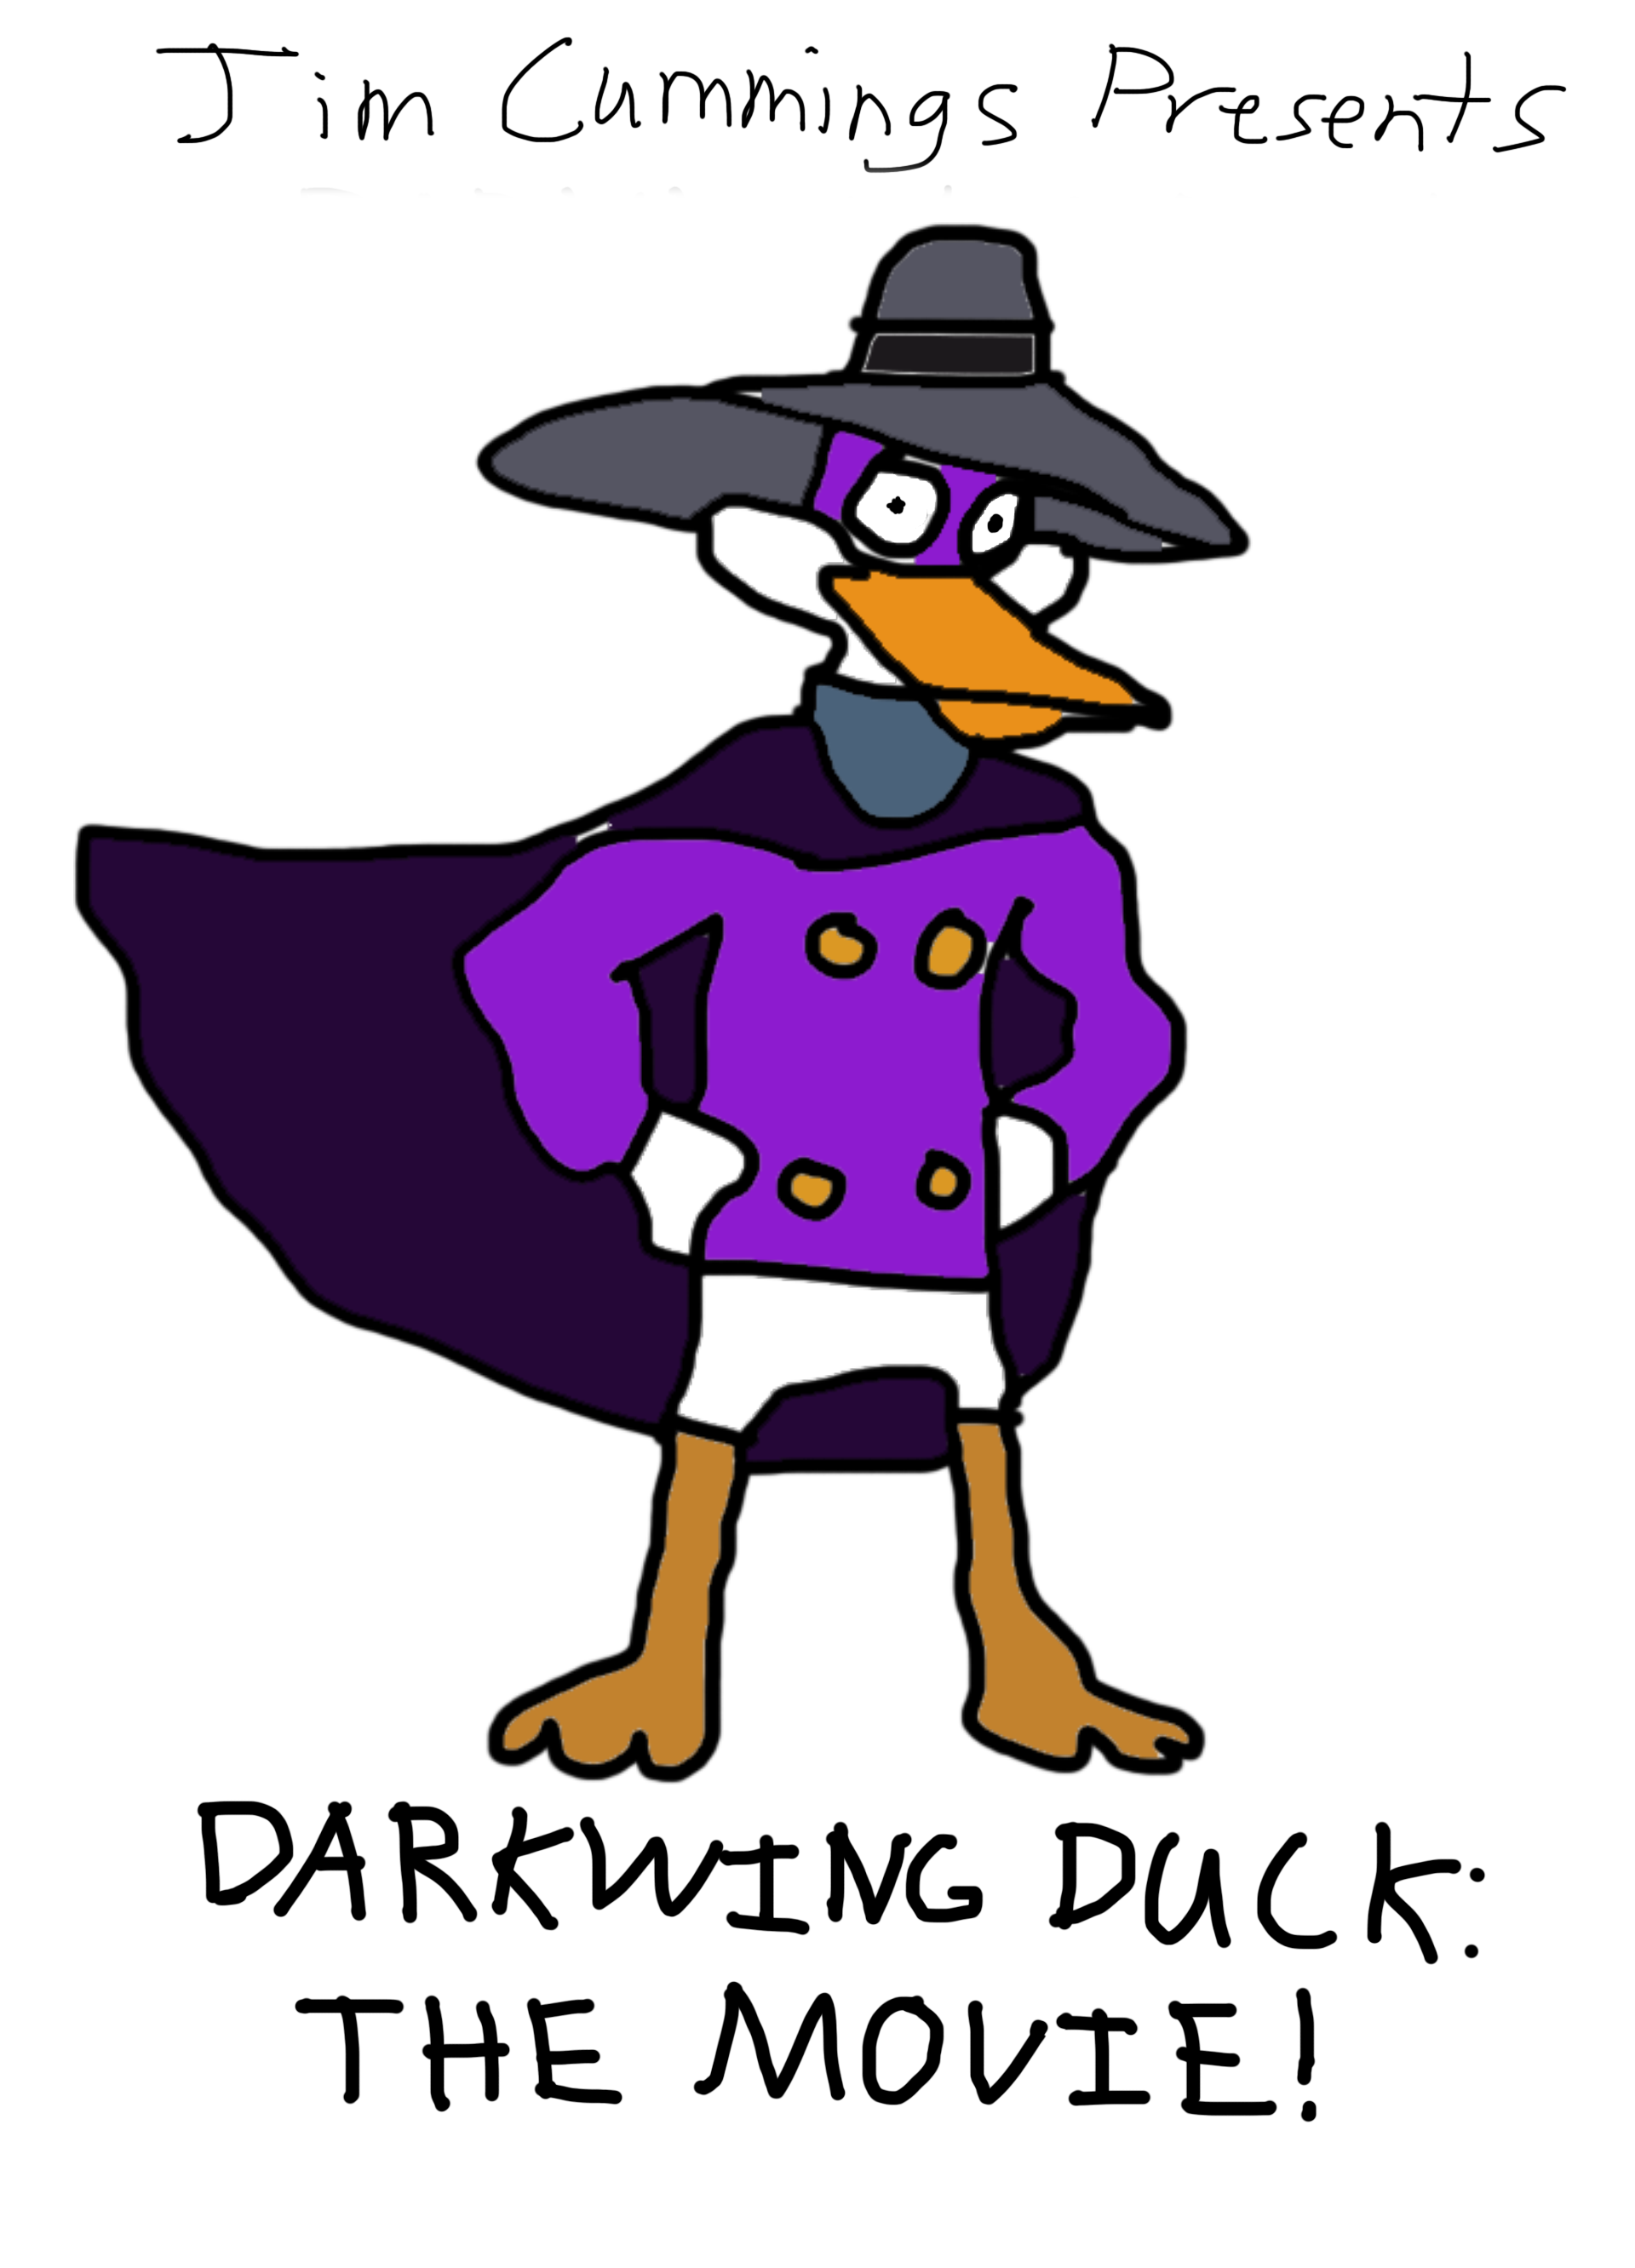 darkwing duck the movie � kickstarter